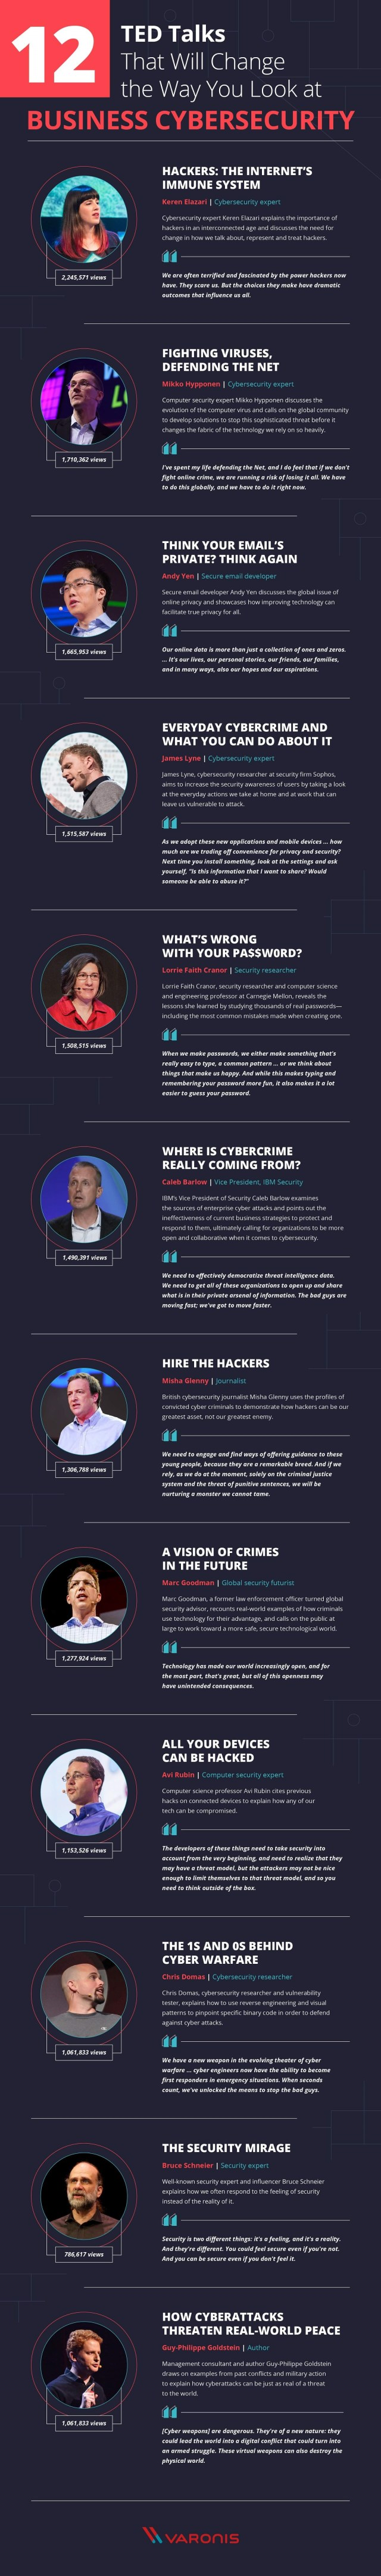 Infographic describing 12 TED talks with compelling views on business cybersecurity